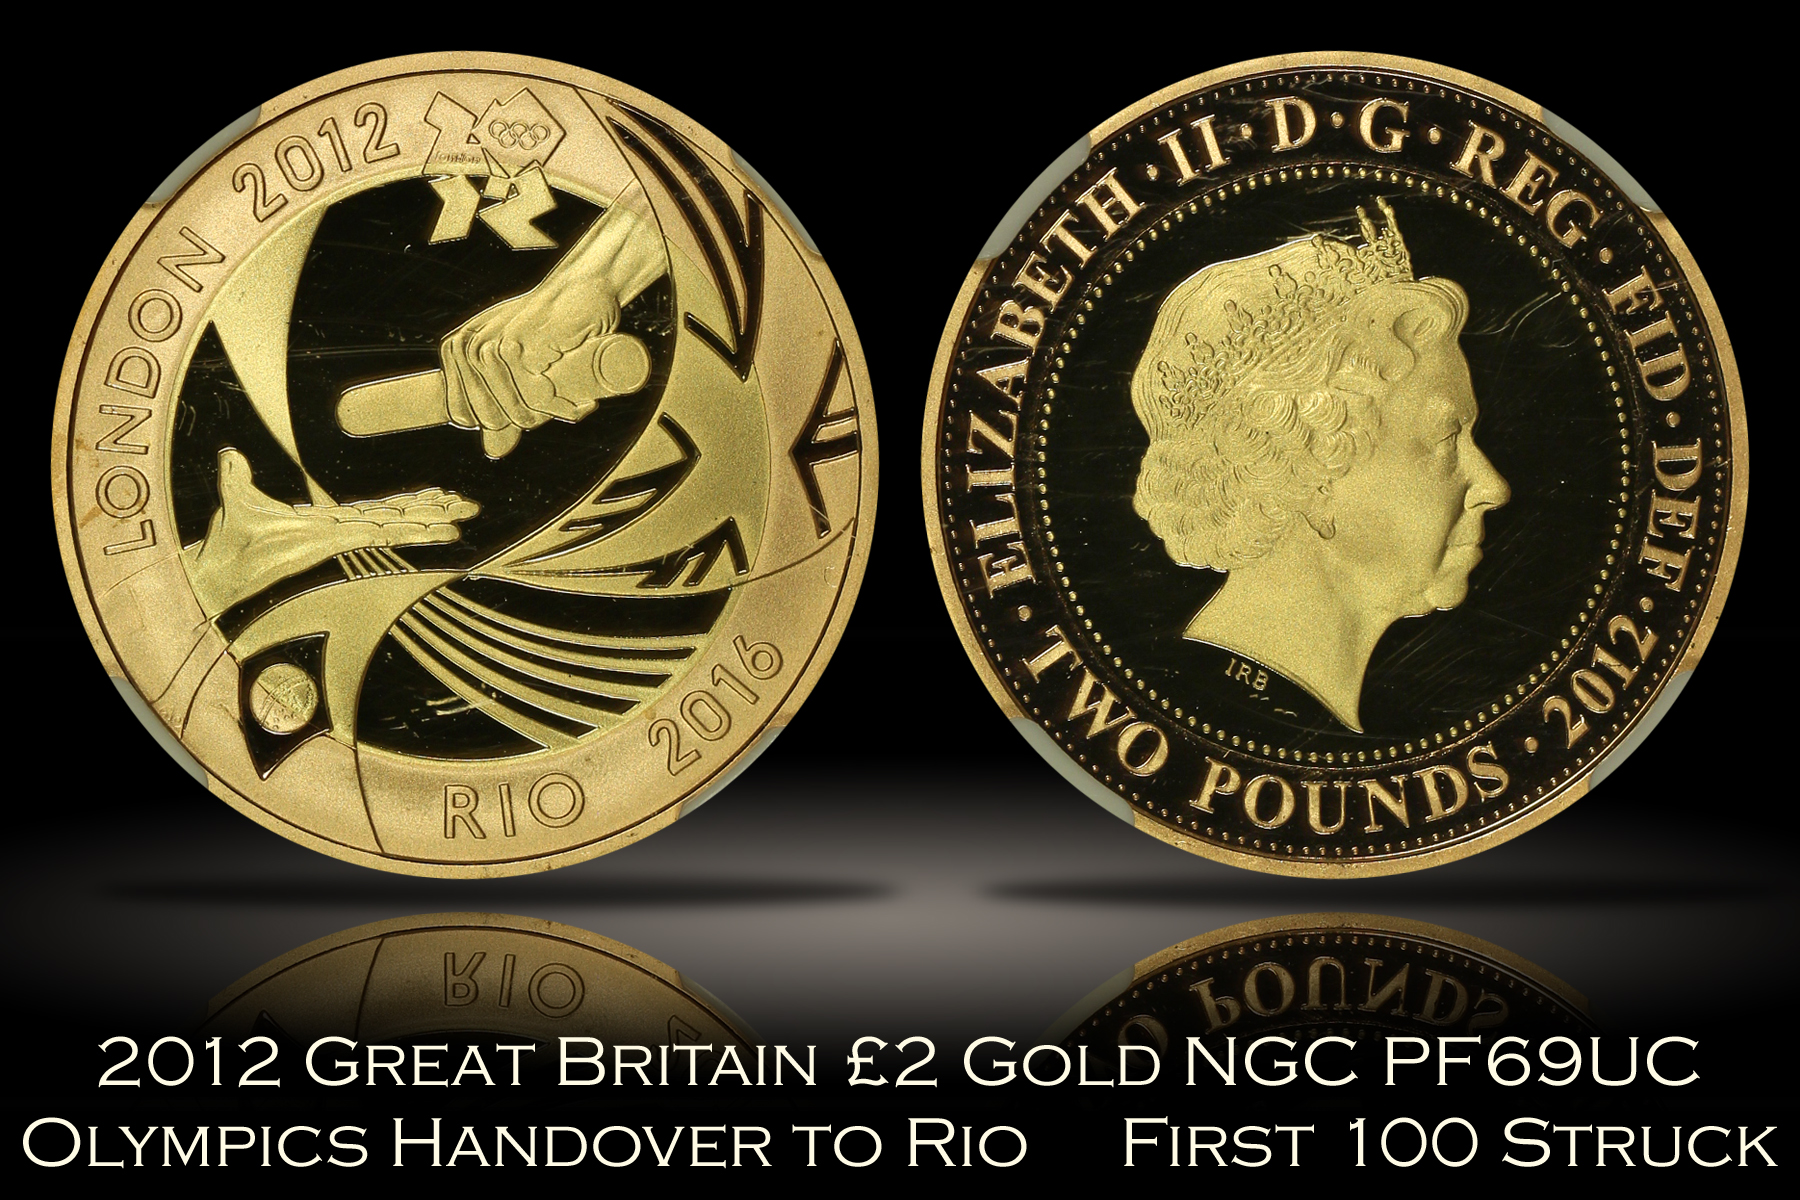 2012 Great Britain £2 Gold London Olympics Handover to Rio NGC PF69UC